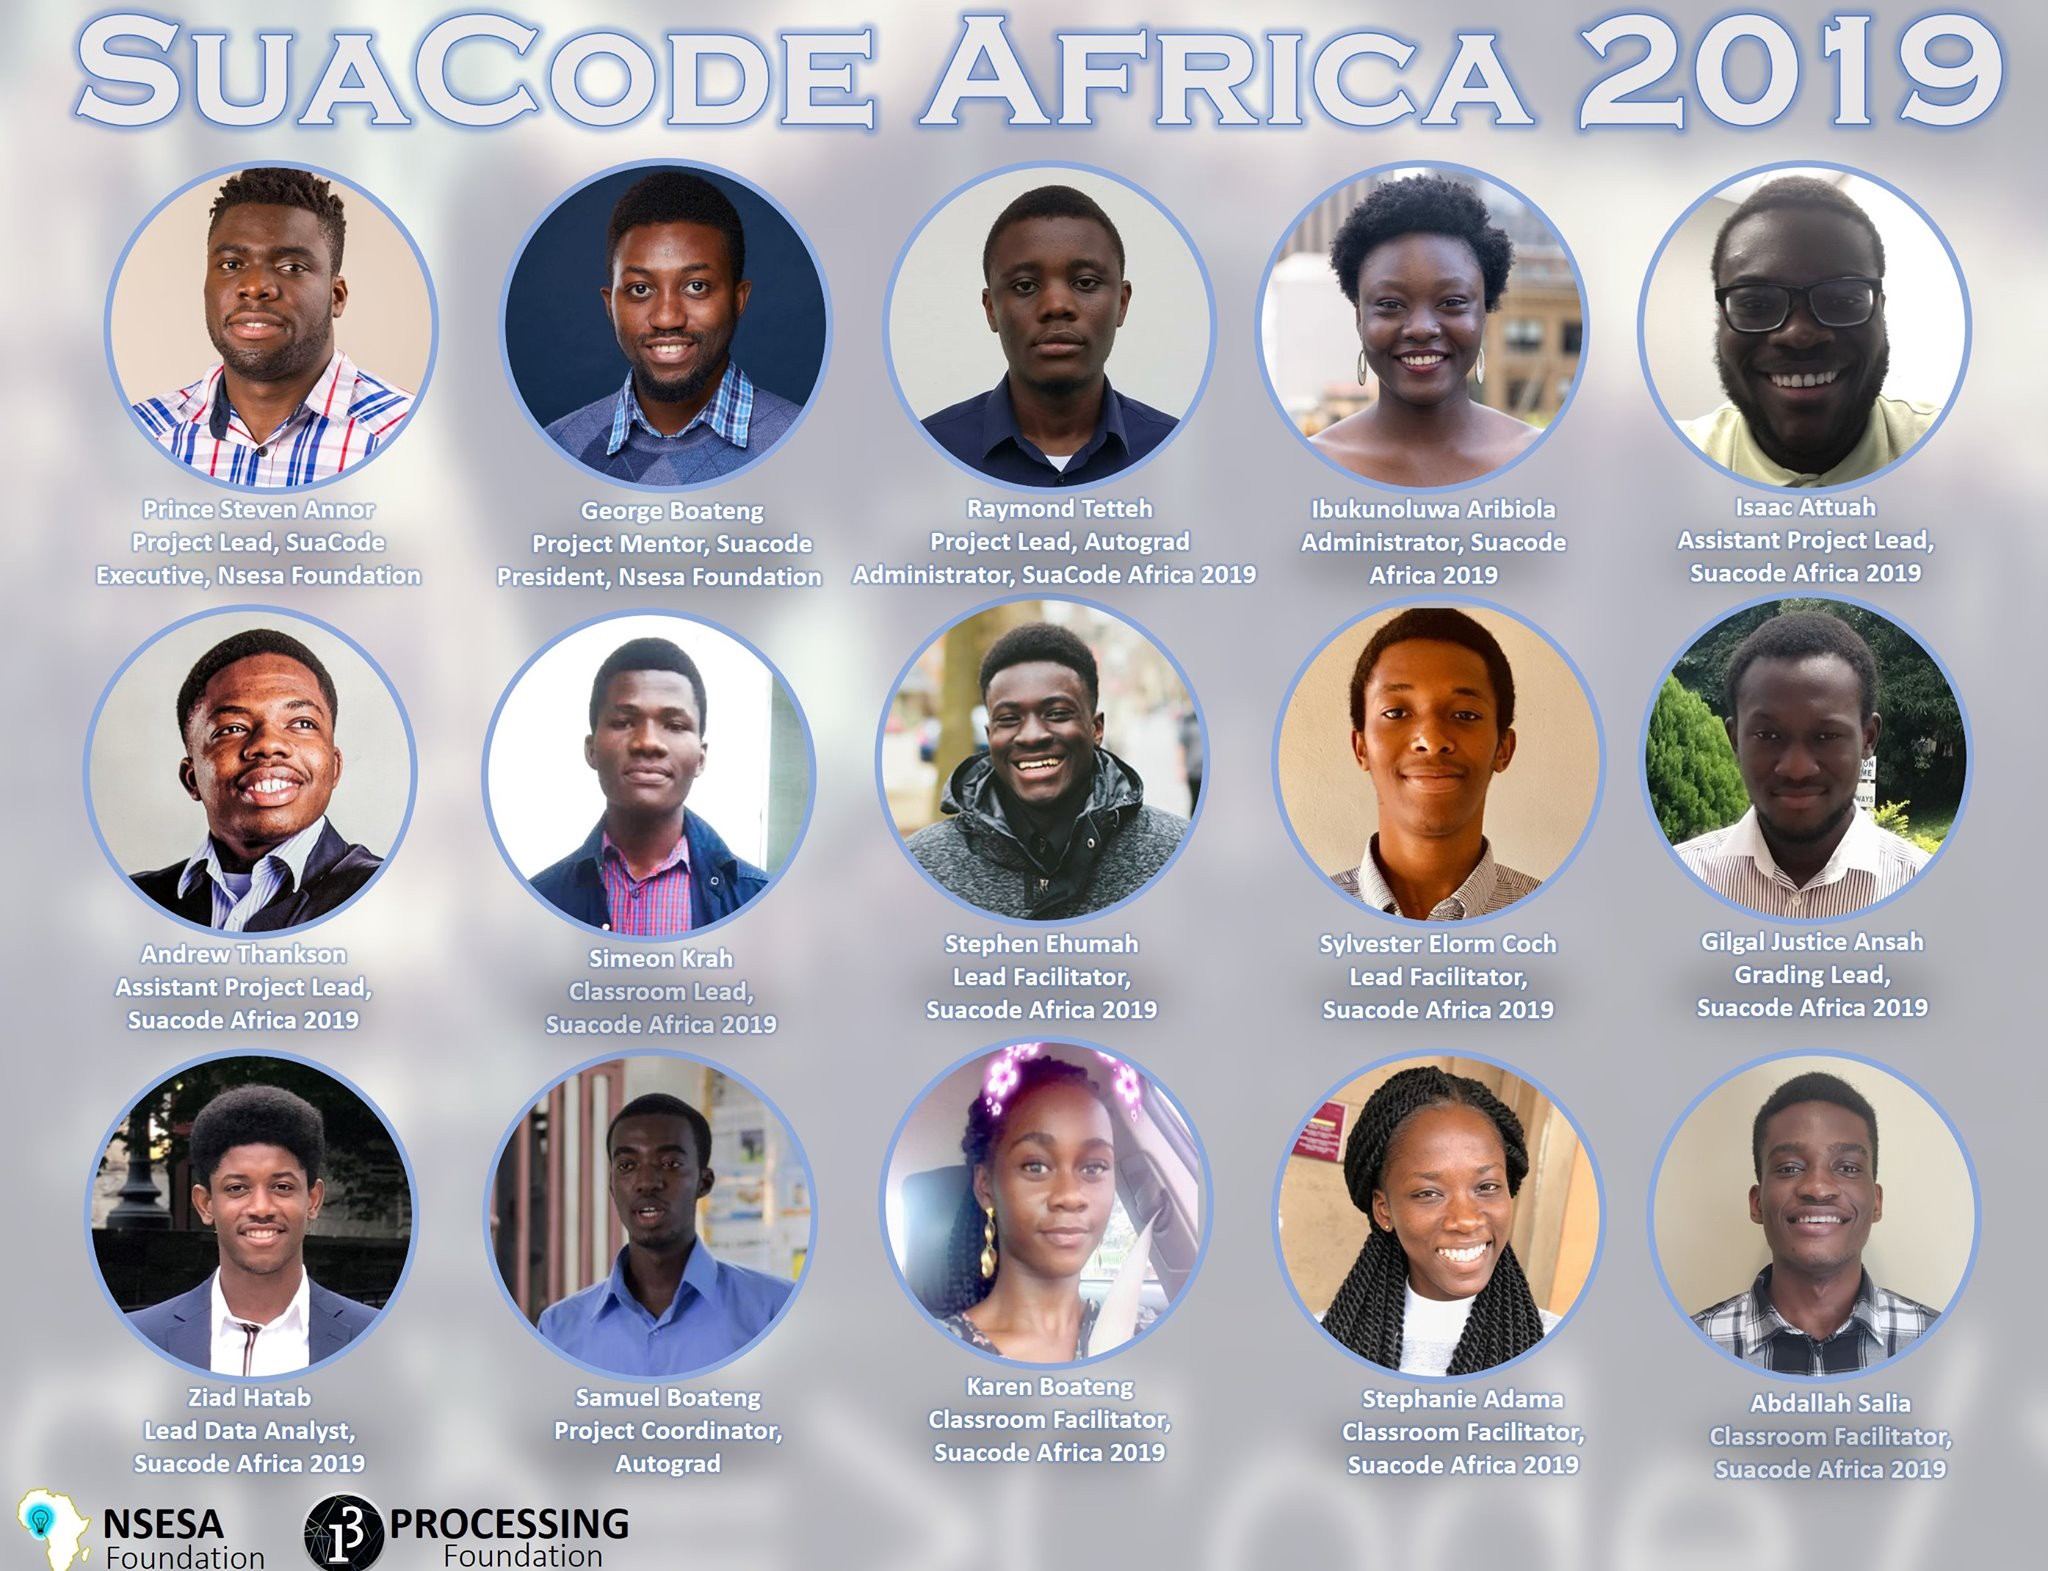 Portraits of the 15 team members of SuaCode Africa in individual circles, with their names and job descriptions.